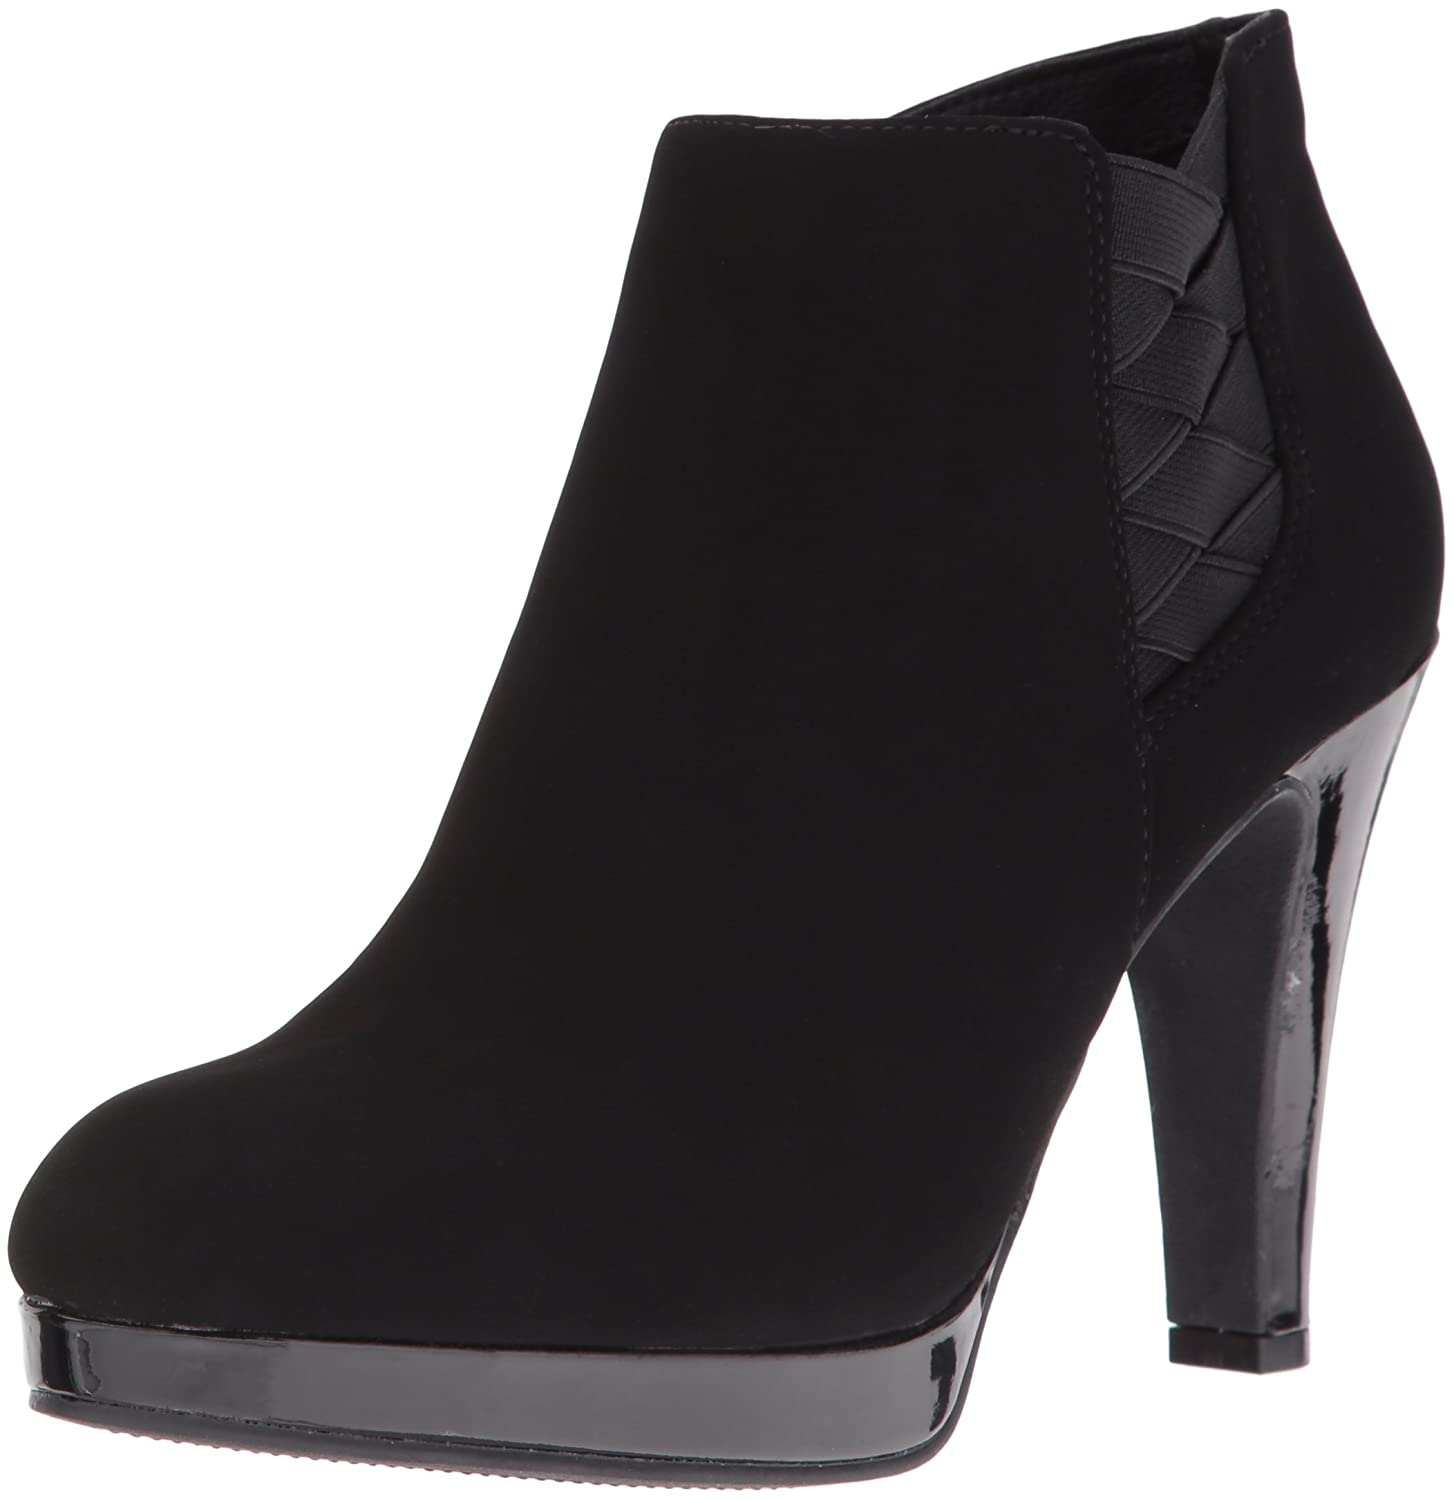 Women's Film Code Platform Heeled Bootie Fashion Boot